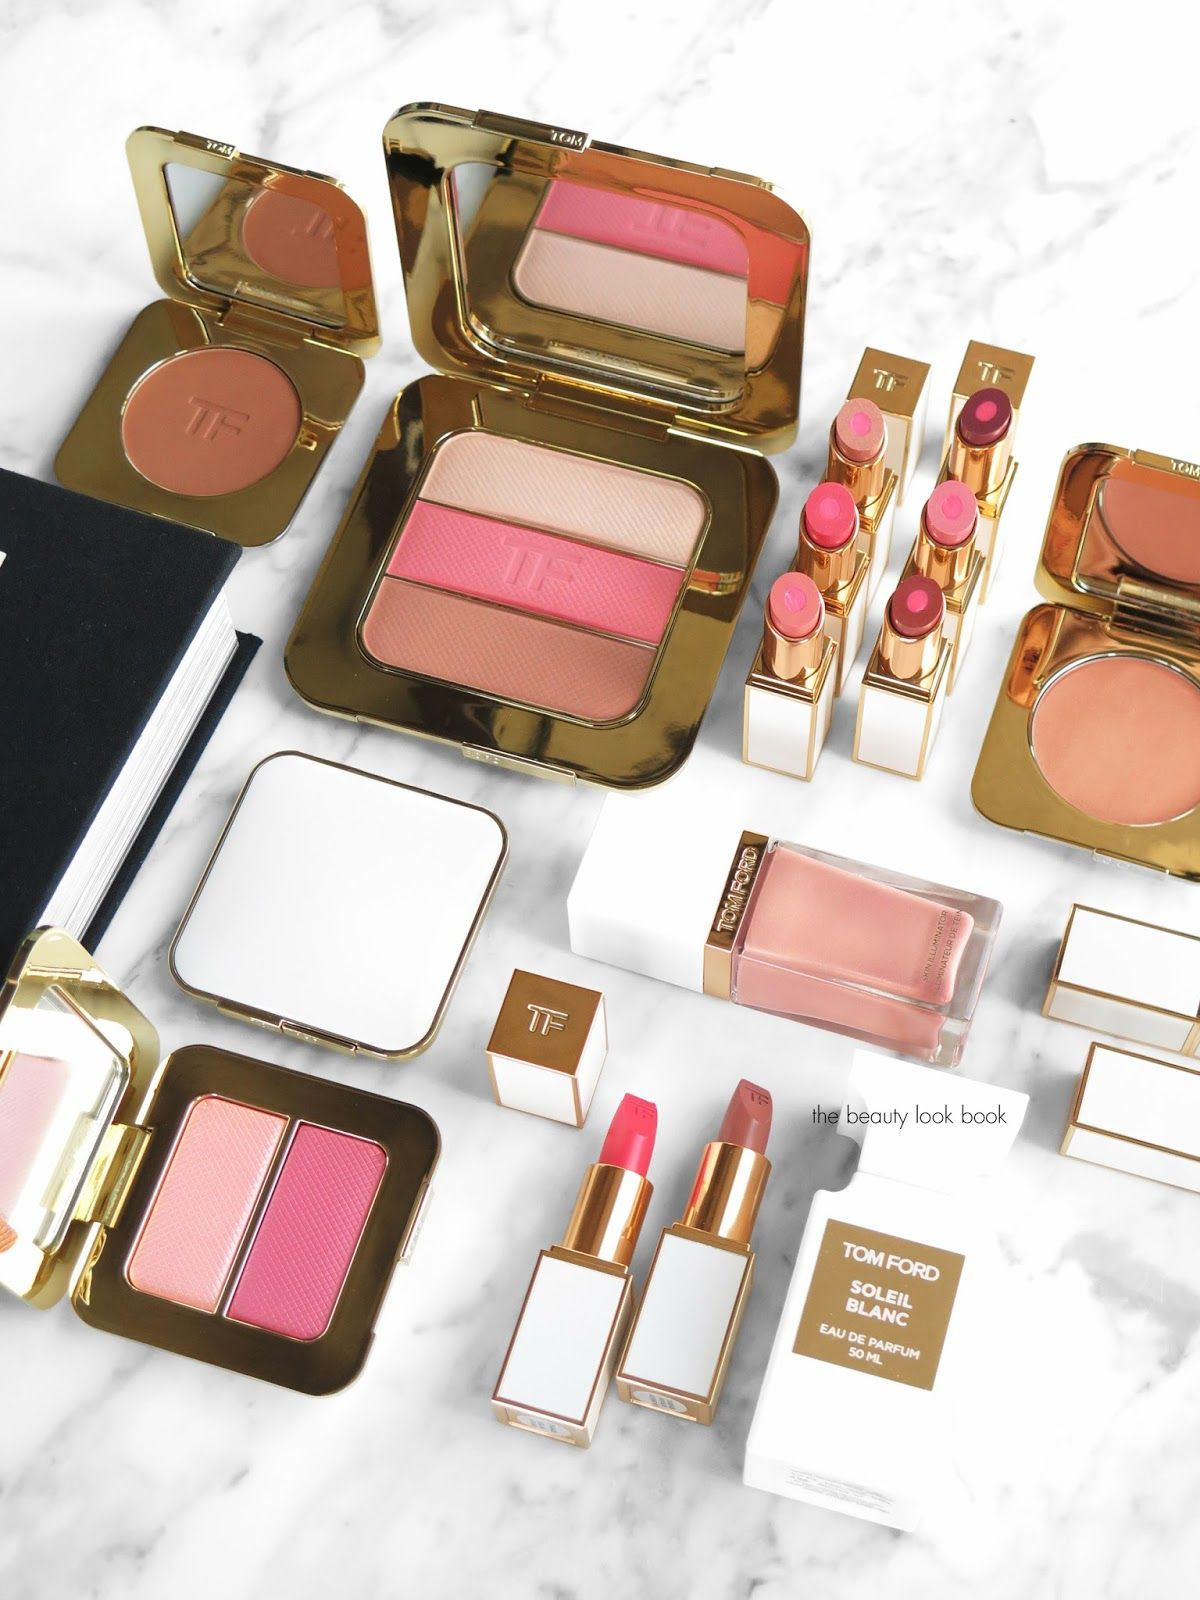 5bdc085f6e The Beauty Look Book  Tom Ford Beauty Soleil Color Collection for Summer  2016 - Sneak Peek + Swatches